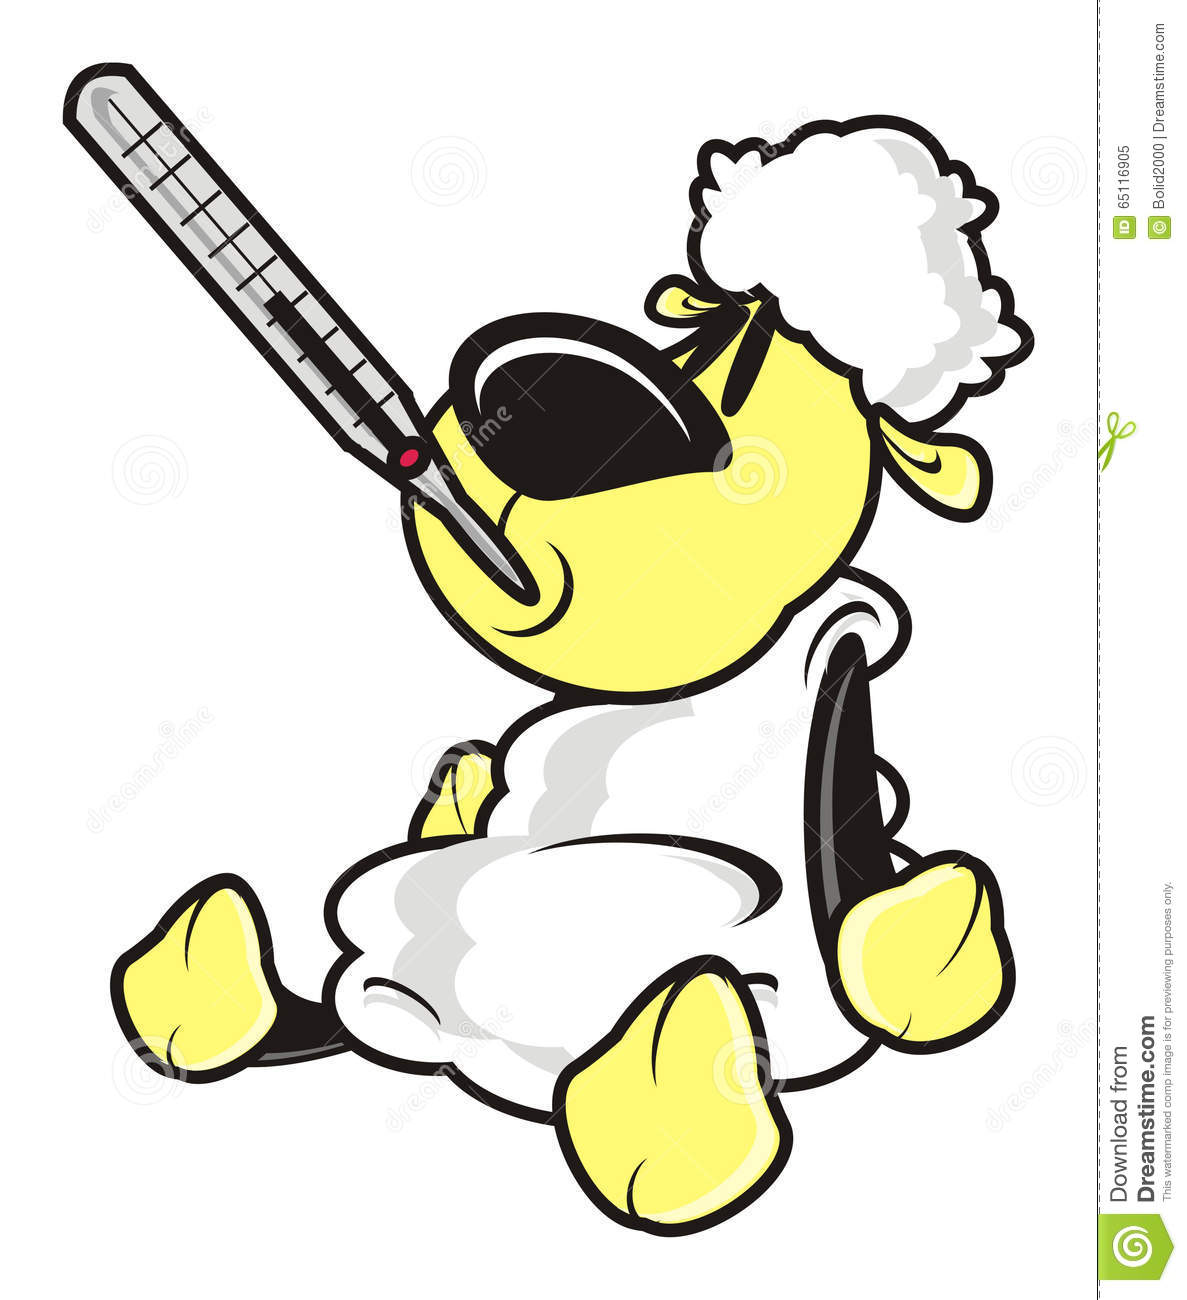 Thermometer, Illness, Fever, Patient, Lamb, Sheep, Drawing